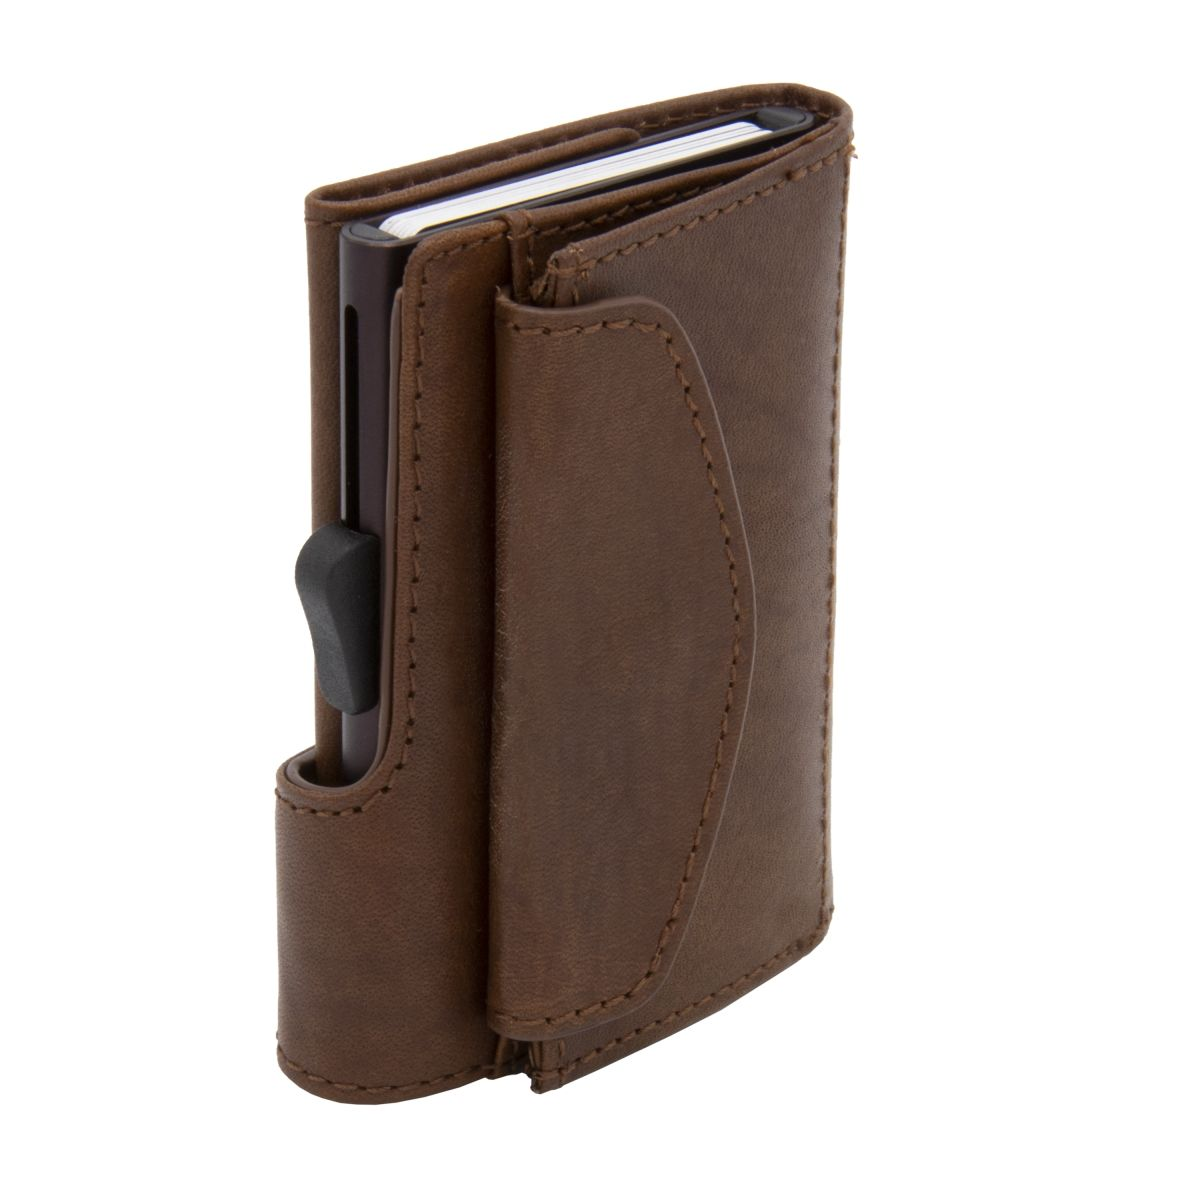 C-Secure Aluminum Card Holder with Genuine Leather and Coin Pouch - Brown